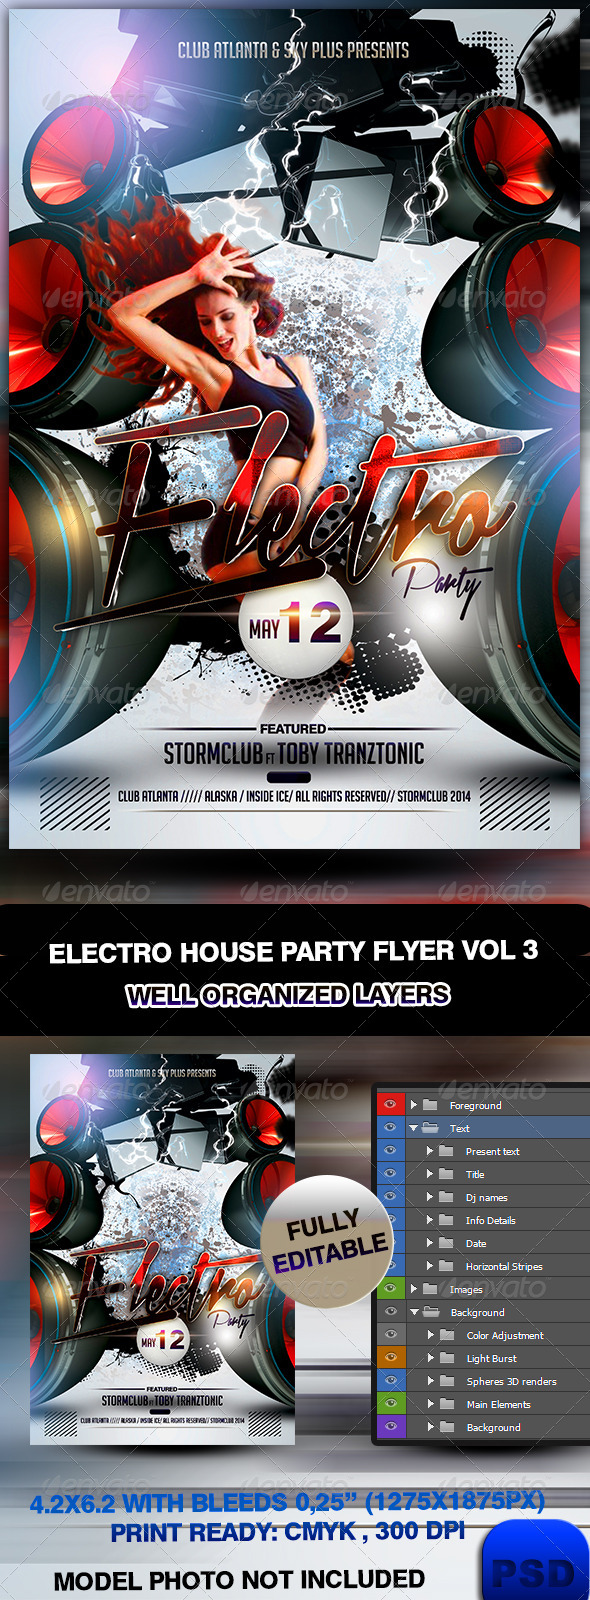 Electro House Party Flyer Vol 3 - Events Flyers